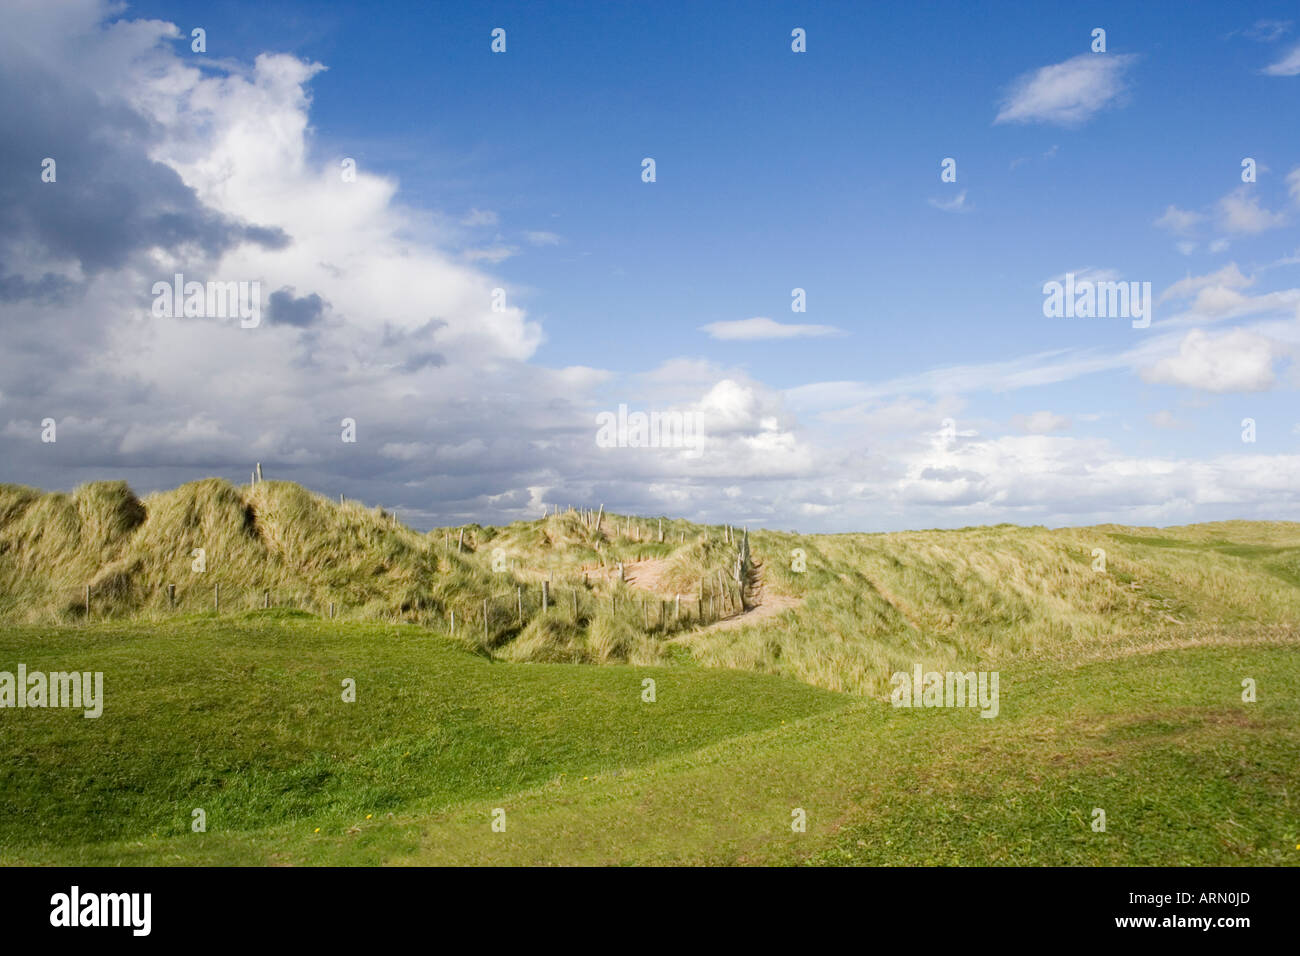 West coast of Ireland. Fanore. County Clare. Sand dunes. Long grass waving in the breeze. - Stock Image